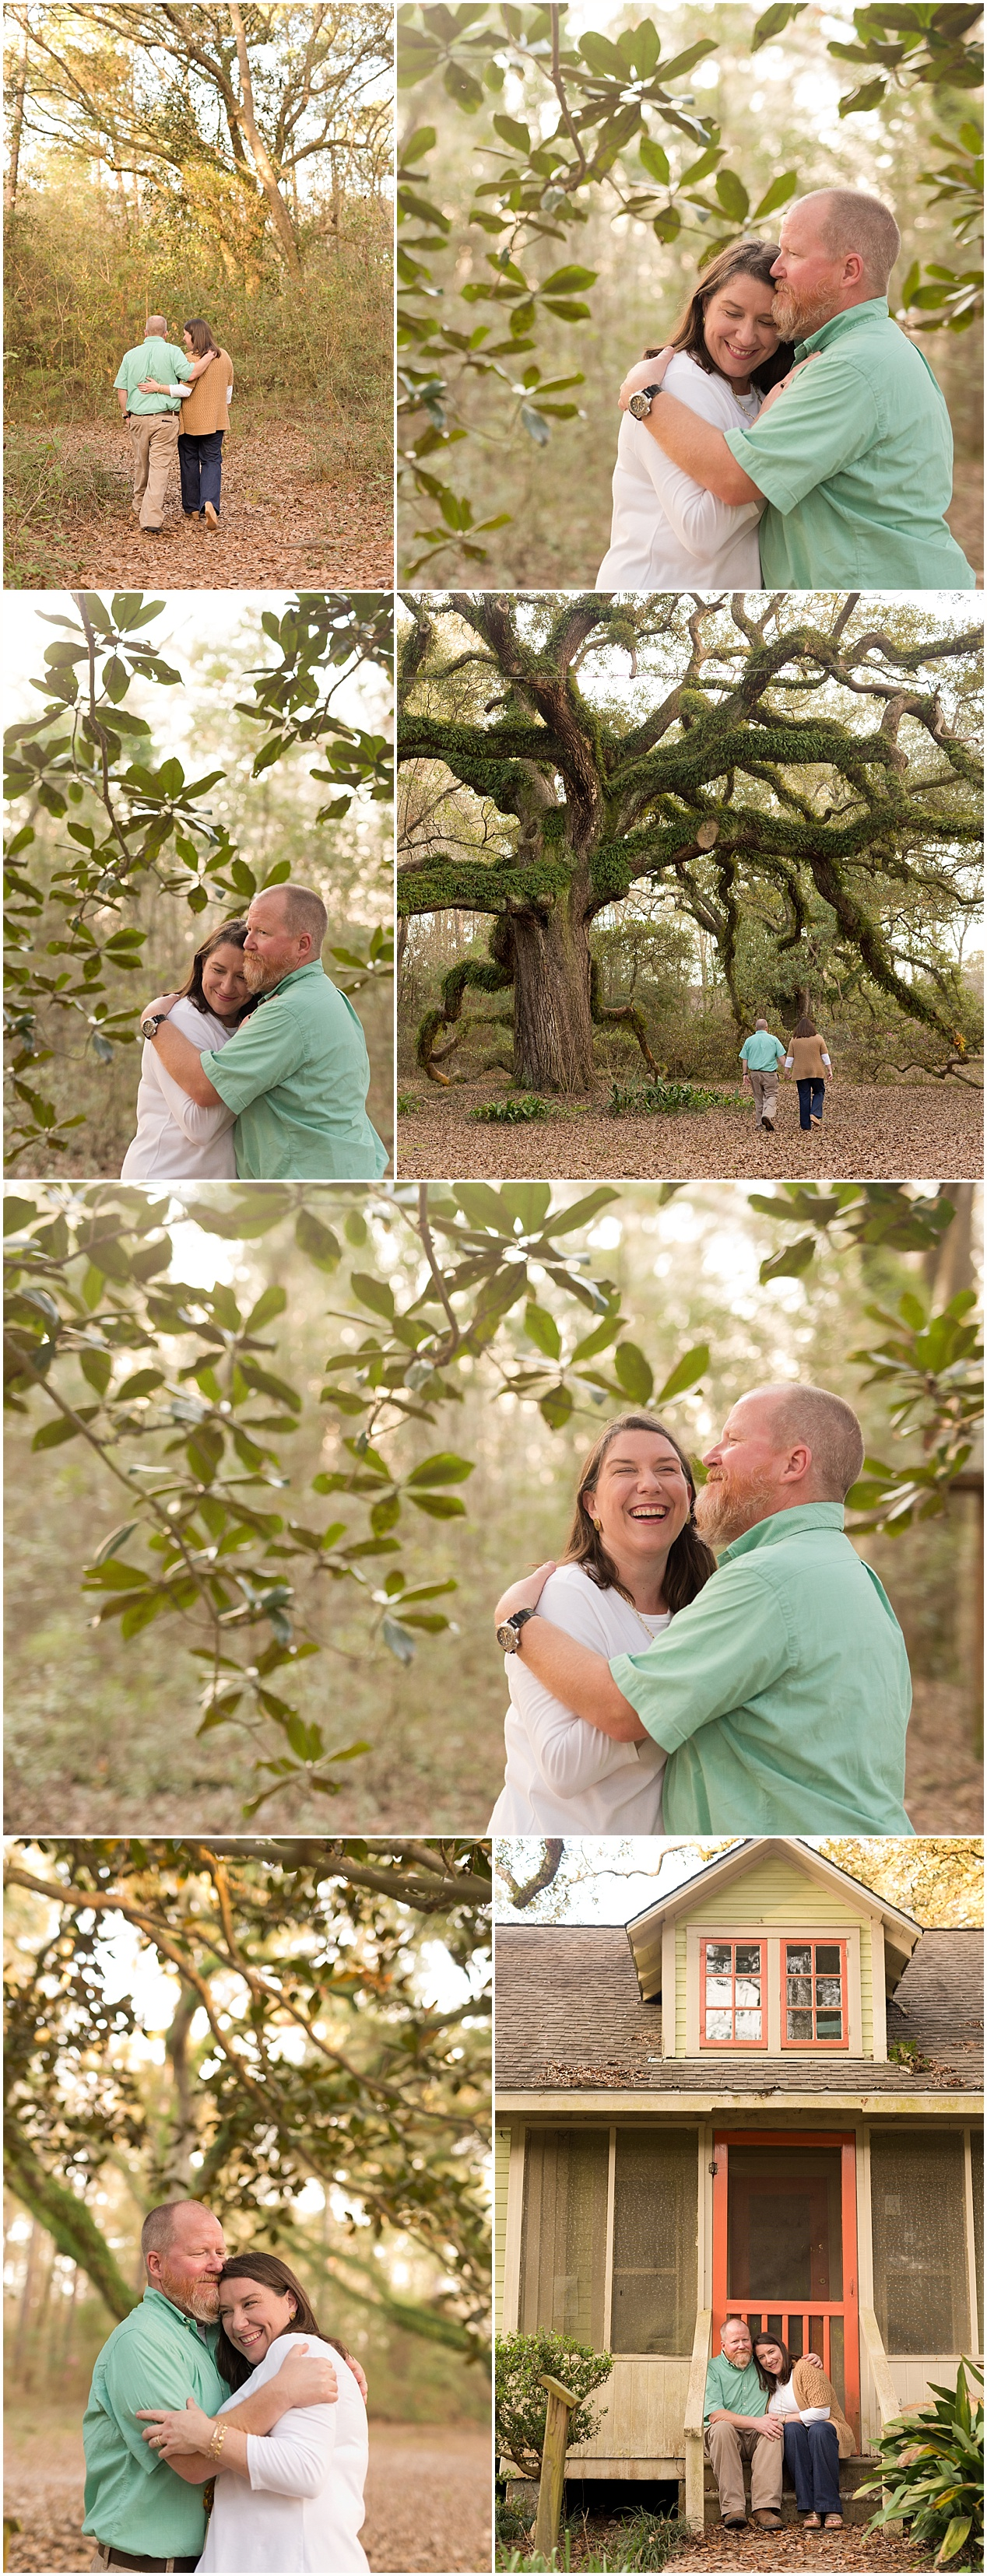 husband and wife portraits in the woods - Ocean Springs, Mississippi photographer